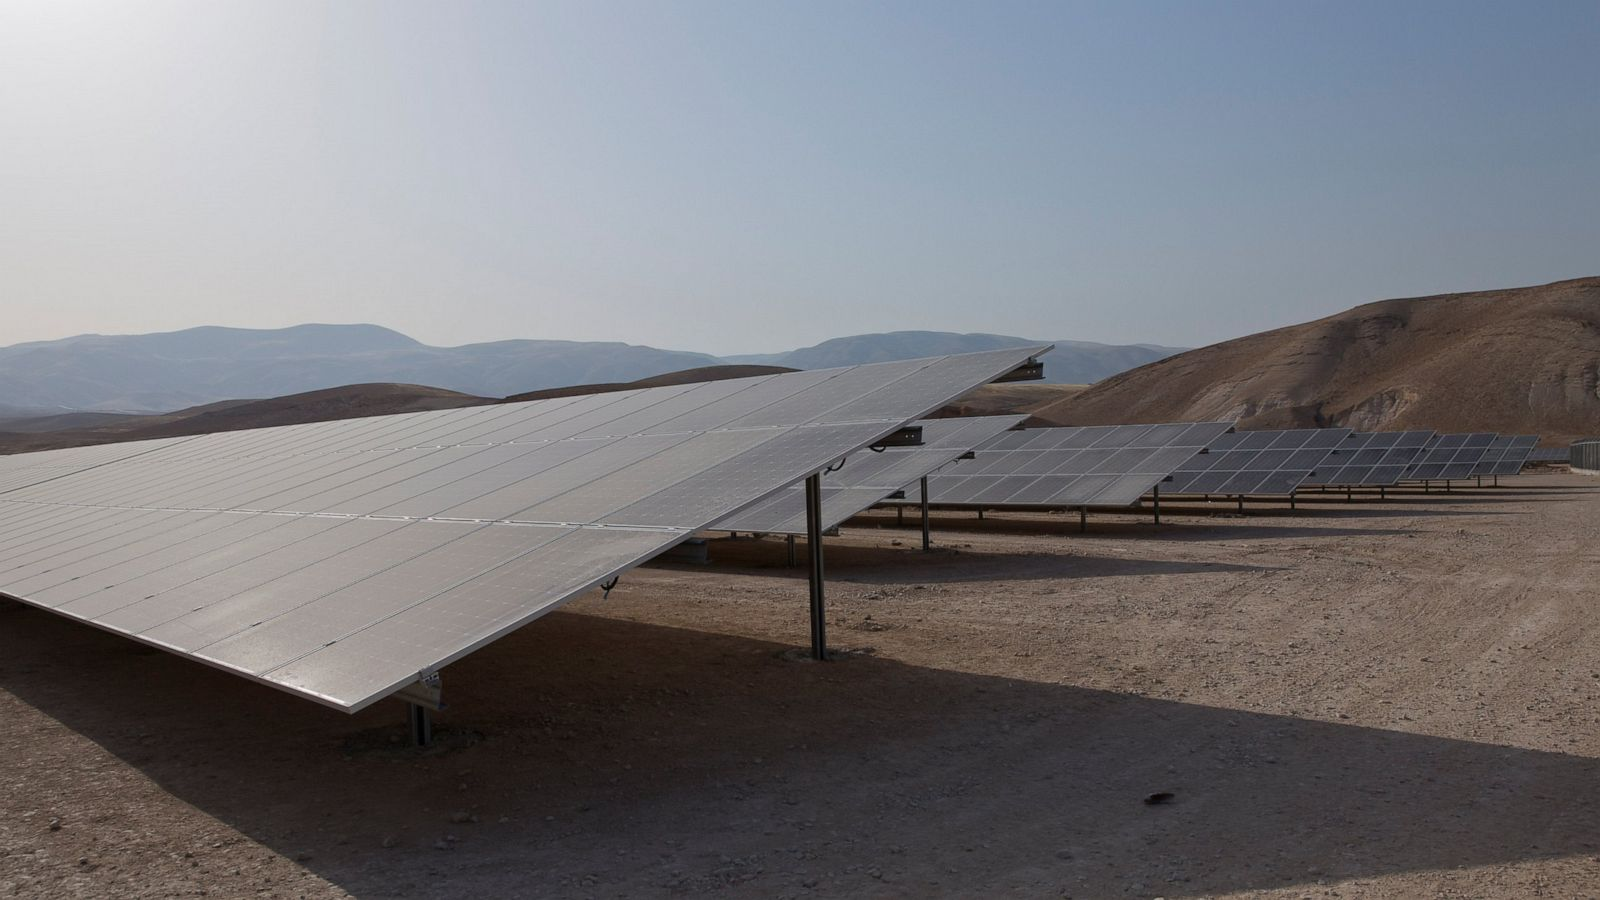 abcnews.go.com - The Associated Press - Seeking energy independence, Palestinians open solar plant